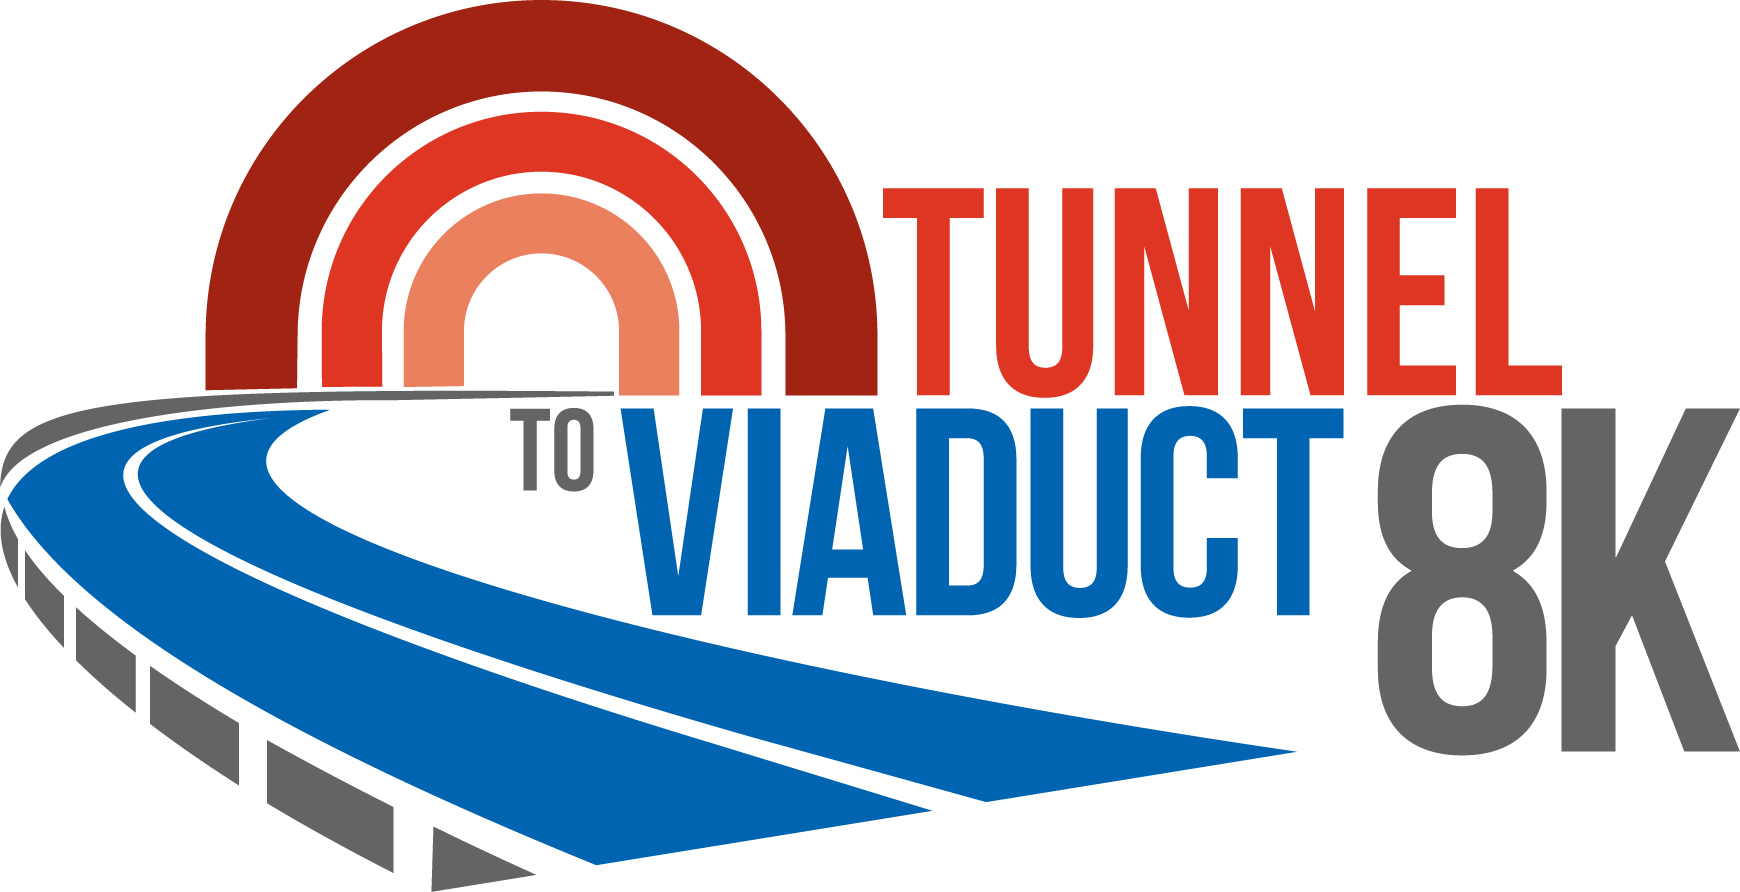 Register for the Tunnel to Viaduct 8K